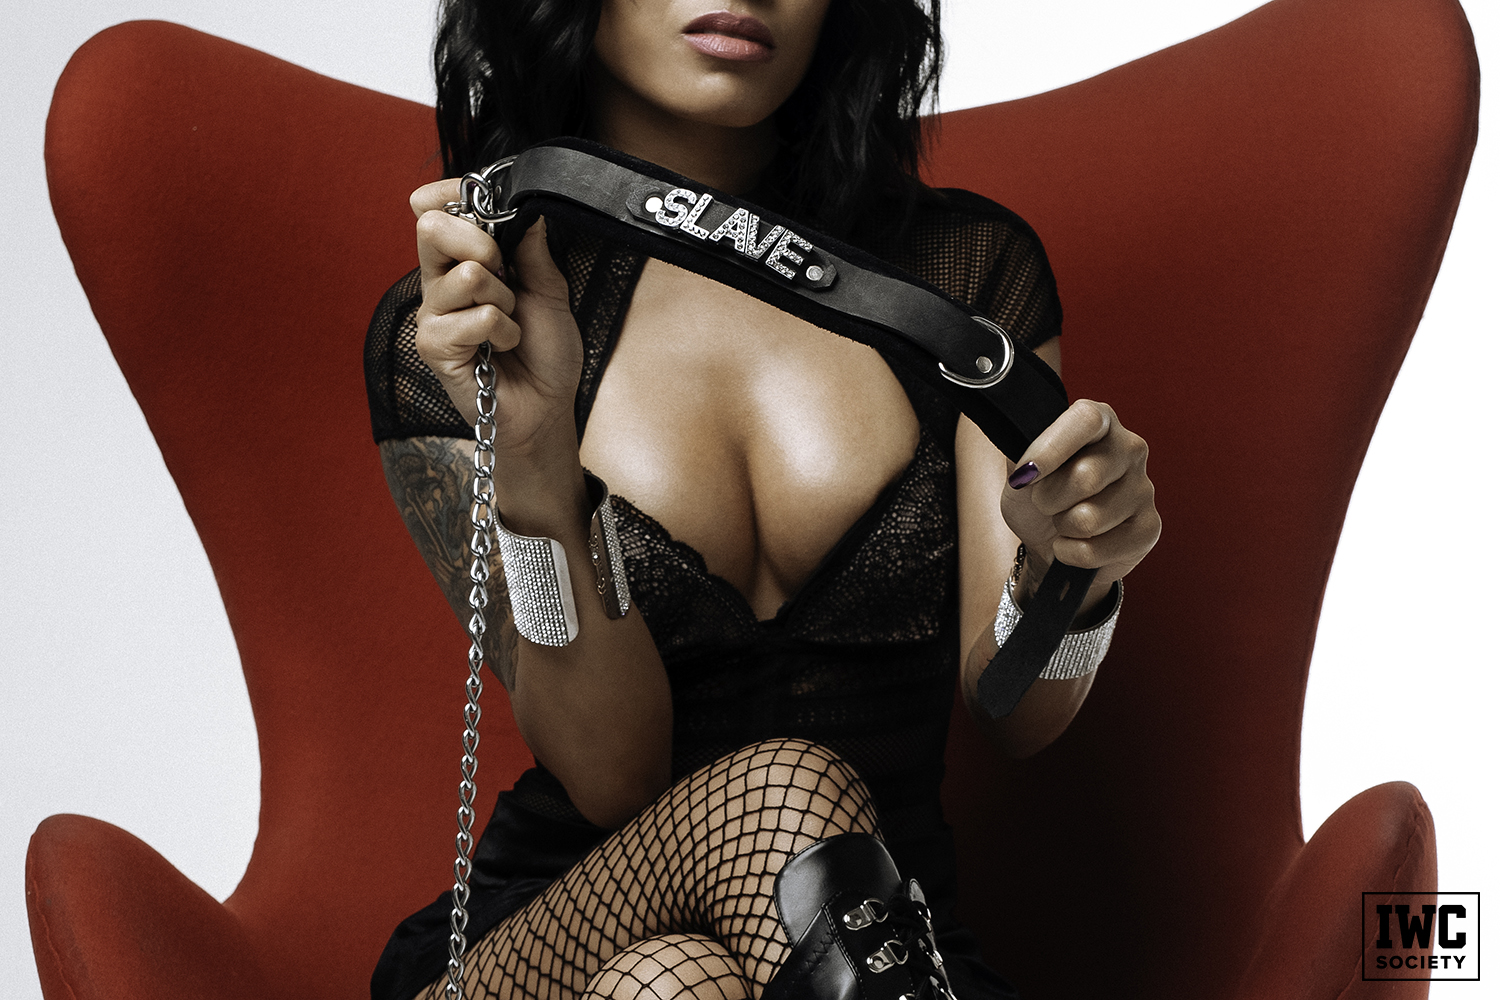 asian dominatrix Asia Perez holding a black collar that says slave in rhinestones